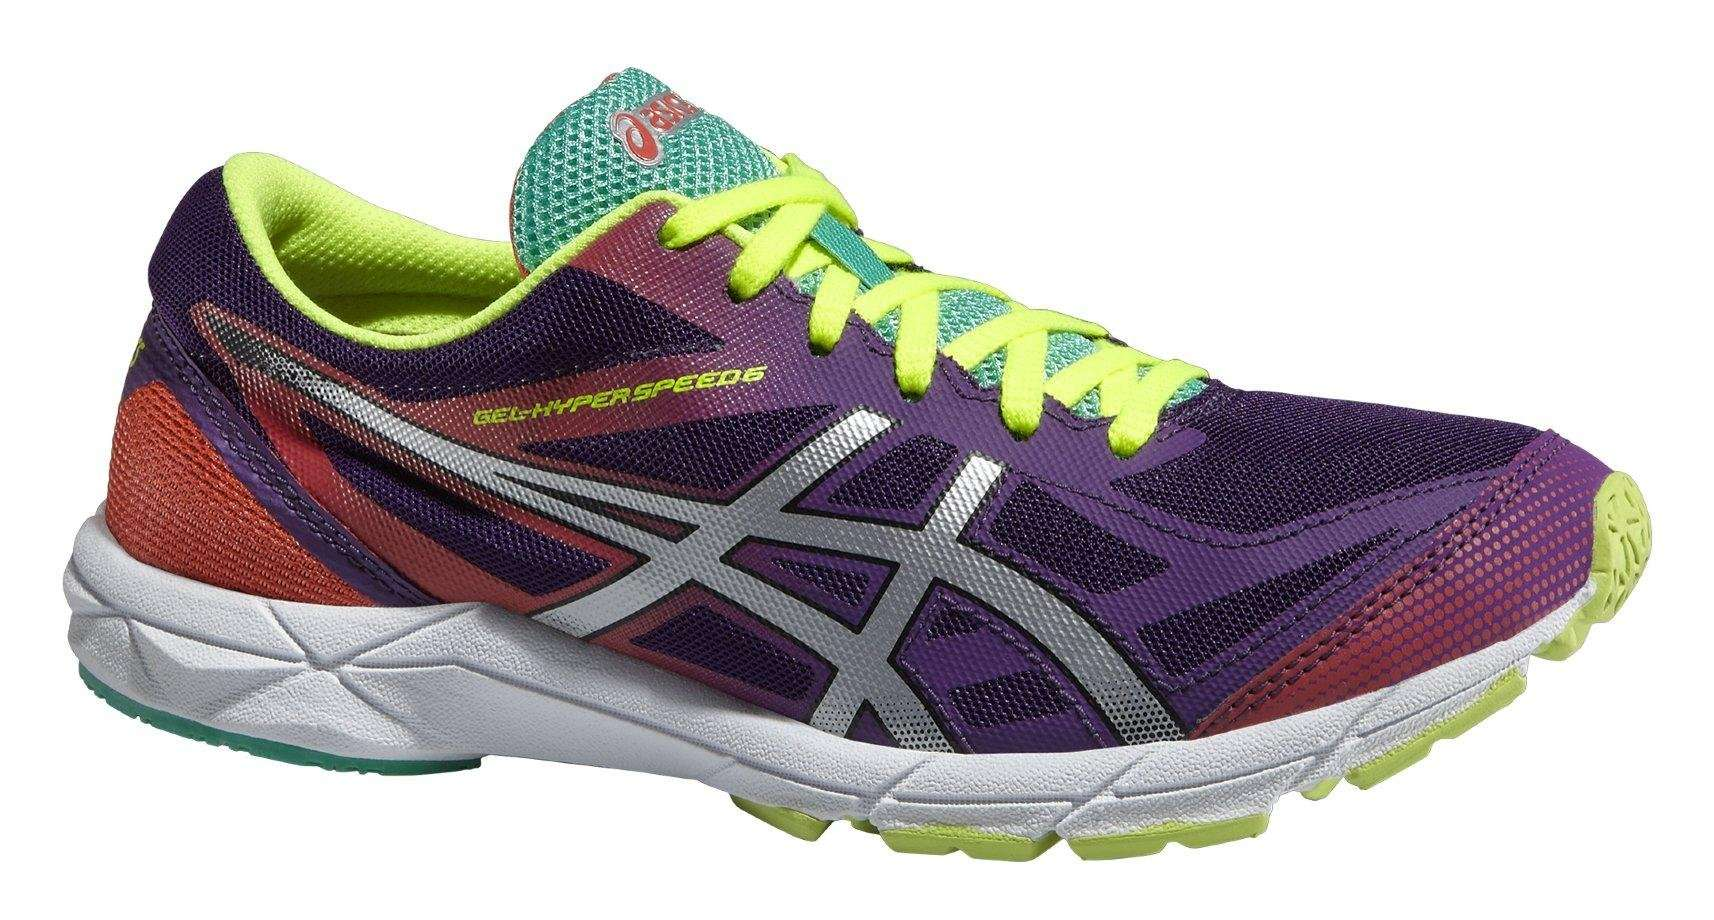 ASICS Gel-Hyperspeed 6 Running Shoe